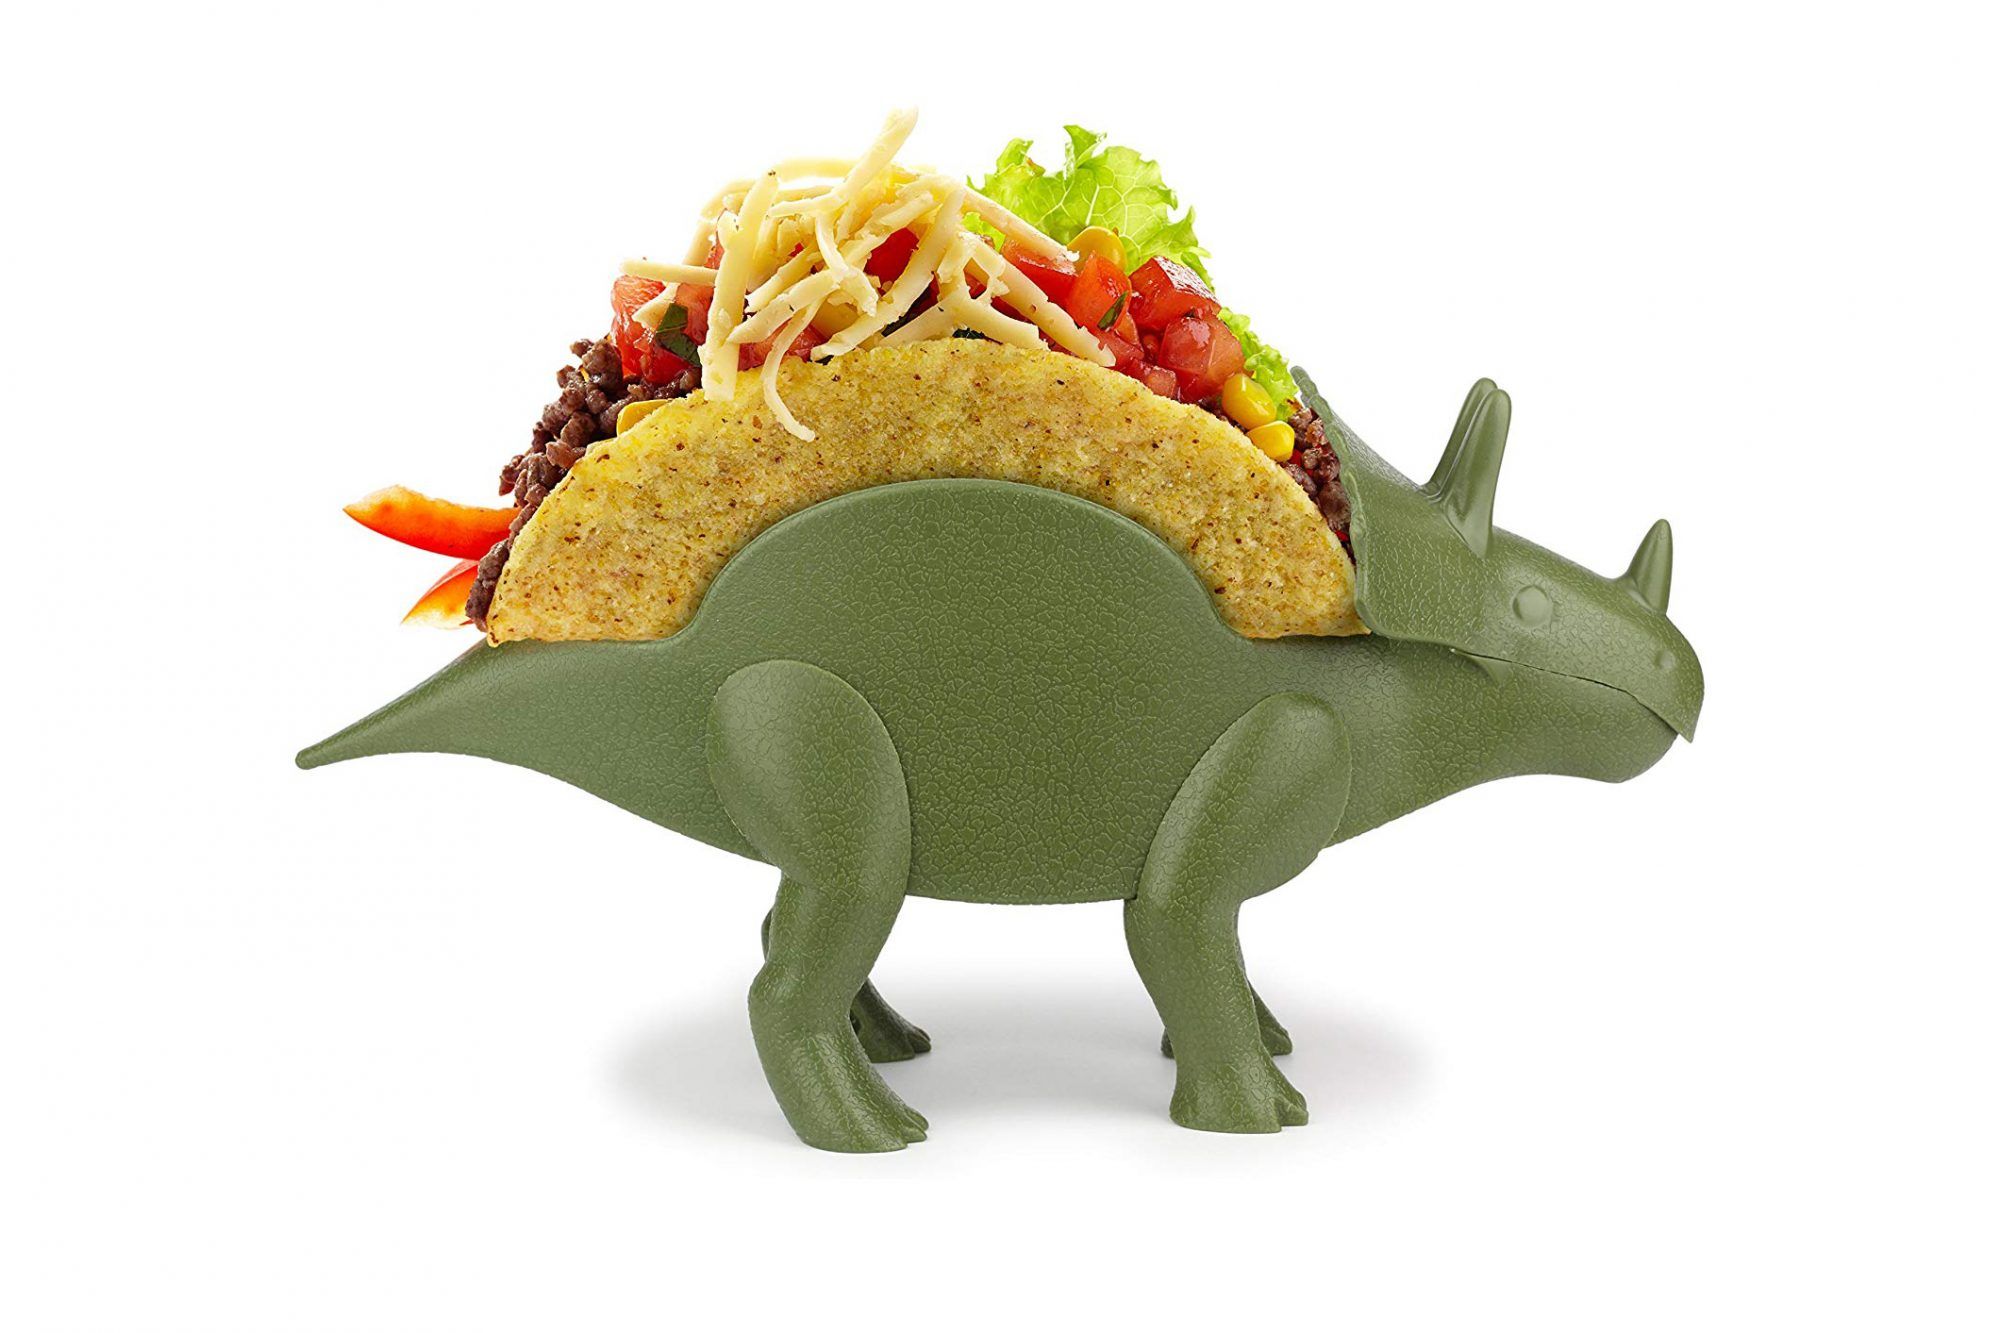 This $10 Dinosaur Taco Holder Will Be a Hit at Your Next Taco Night